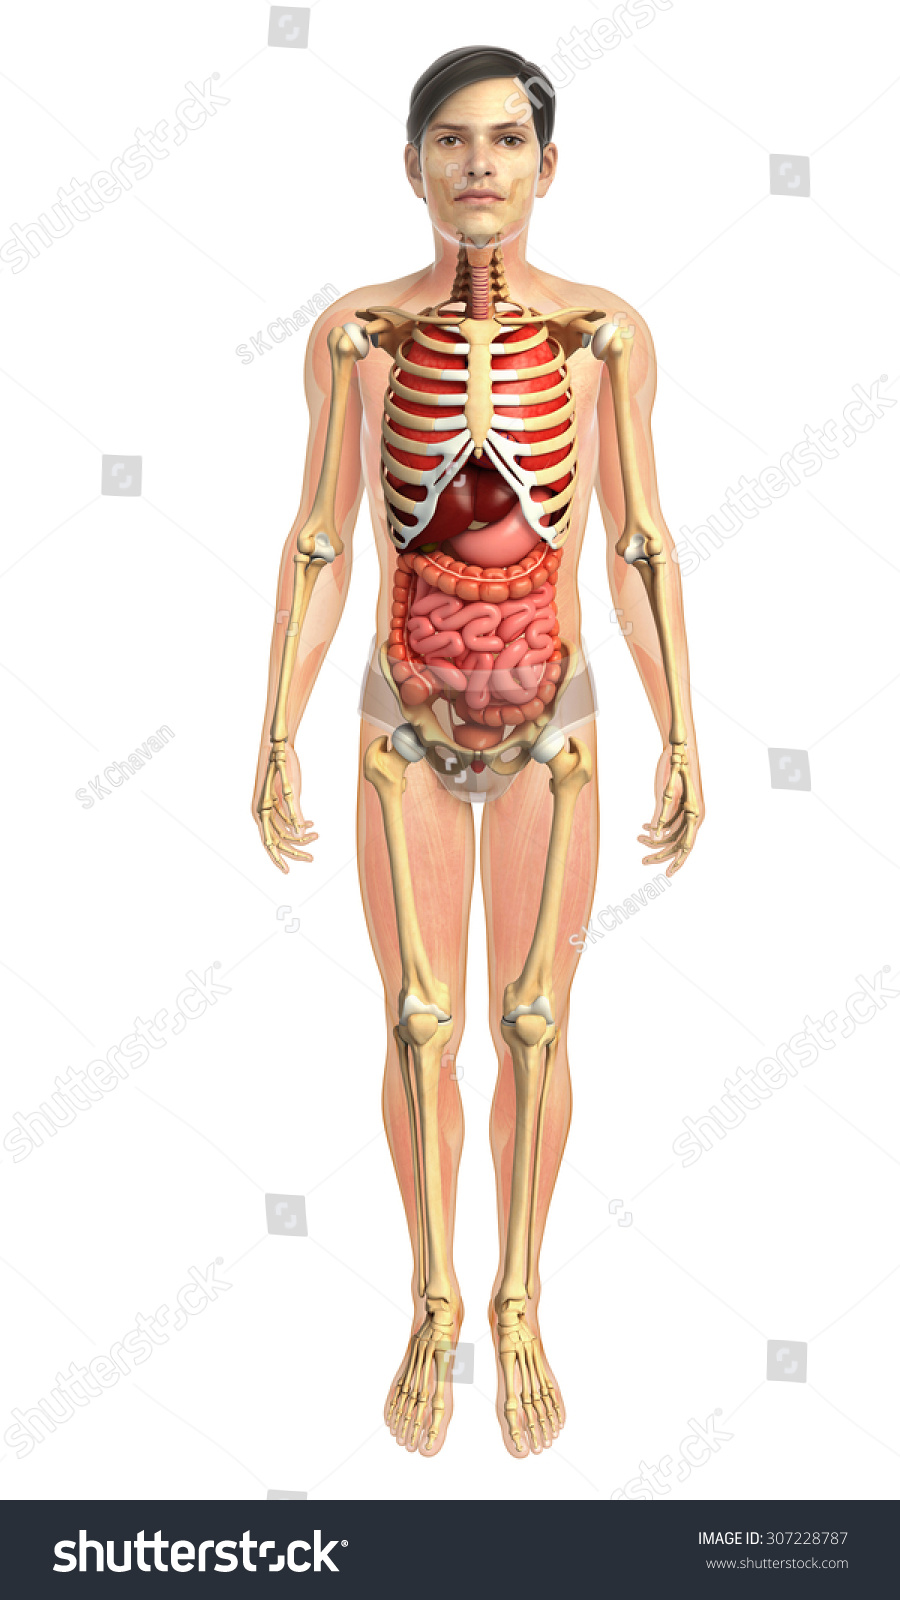 hight resolution of 3d rendered illustration of male digestive system illustration